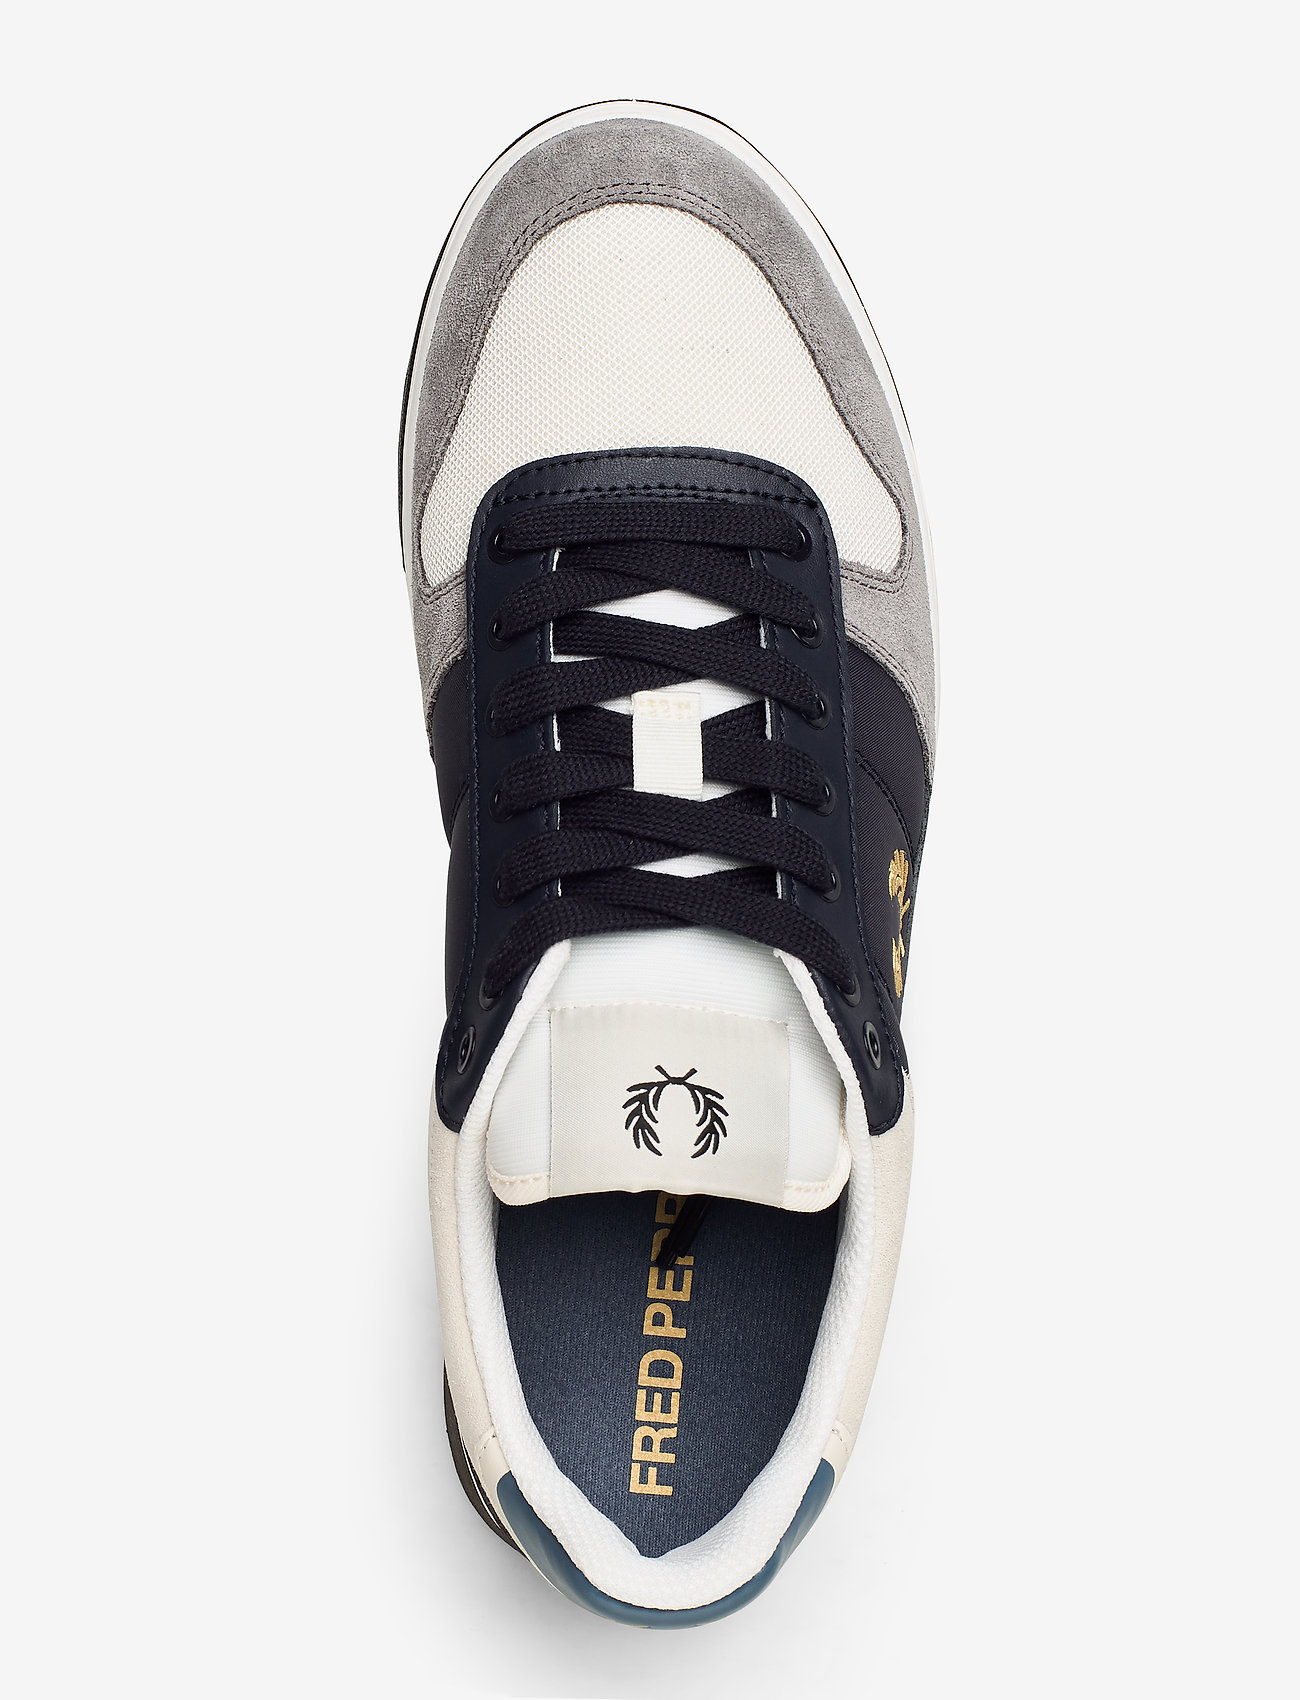 B300 Lthr/suede/poly (Porcelain) - Fred Perry